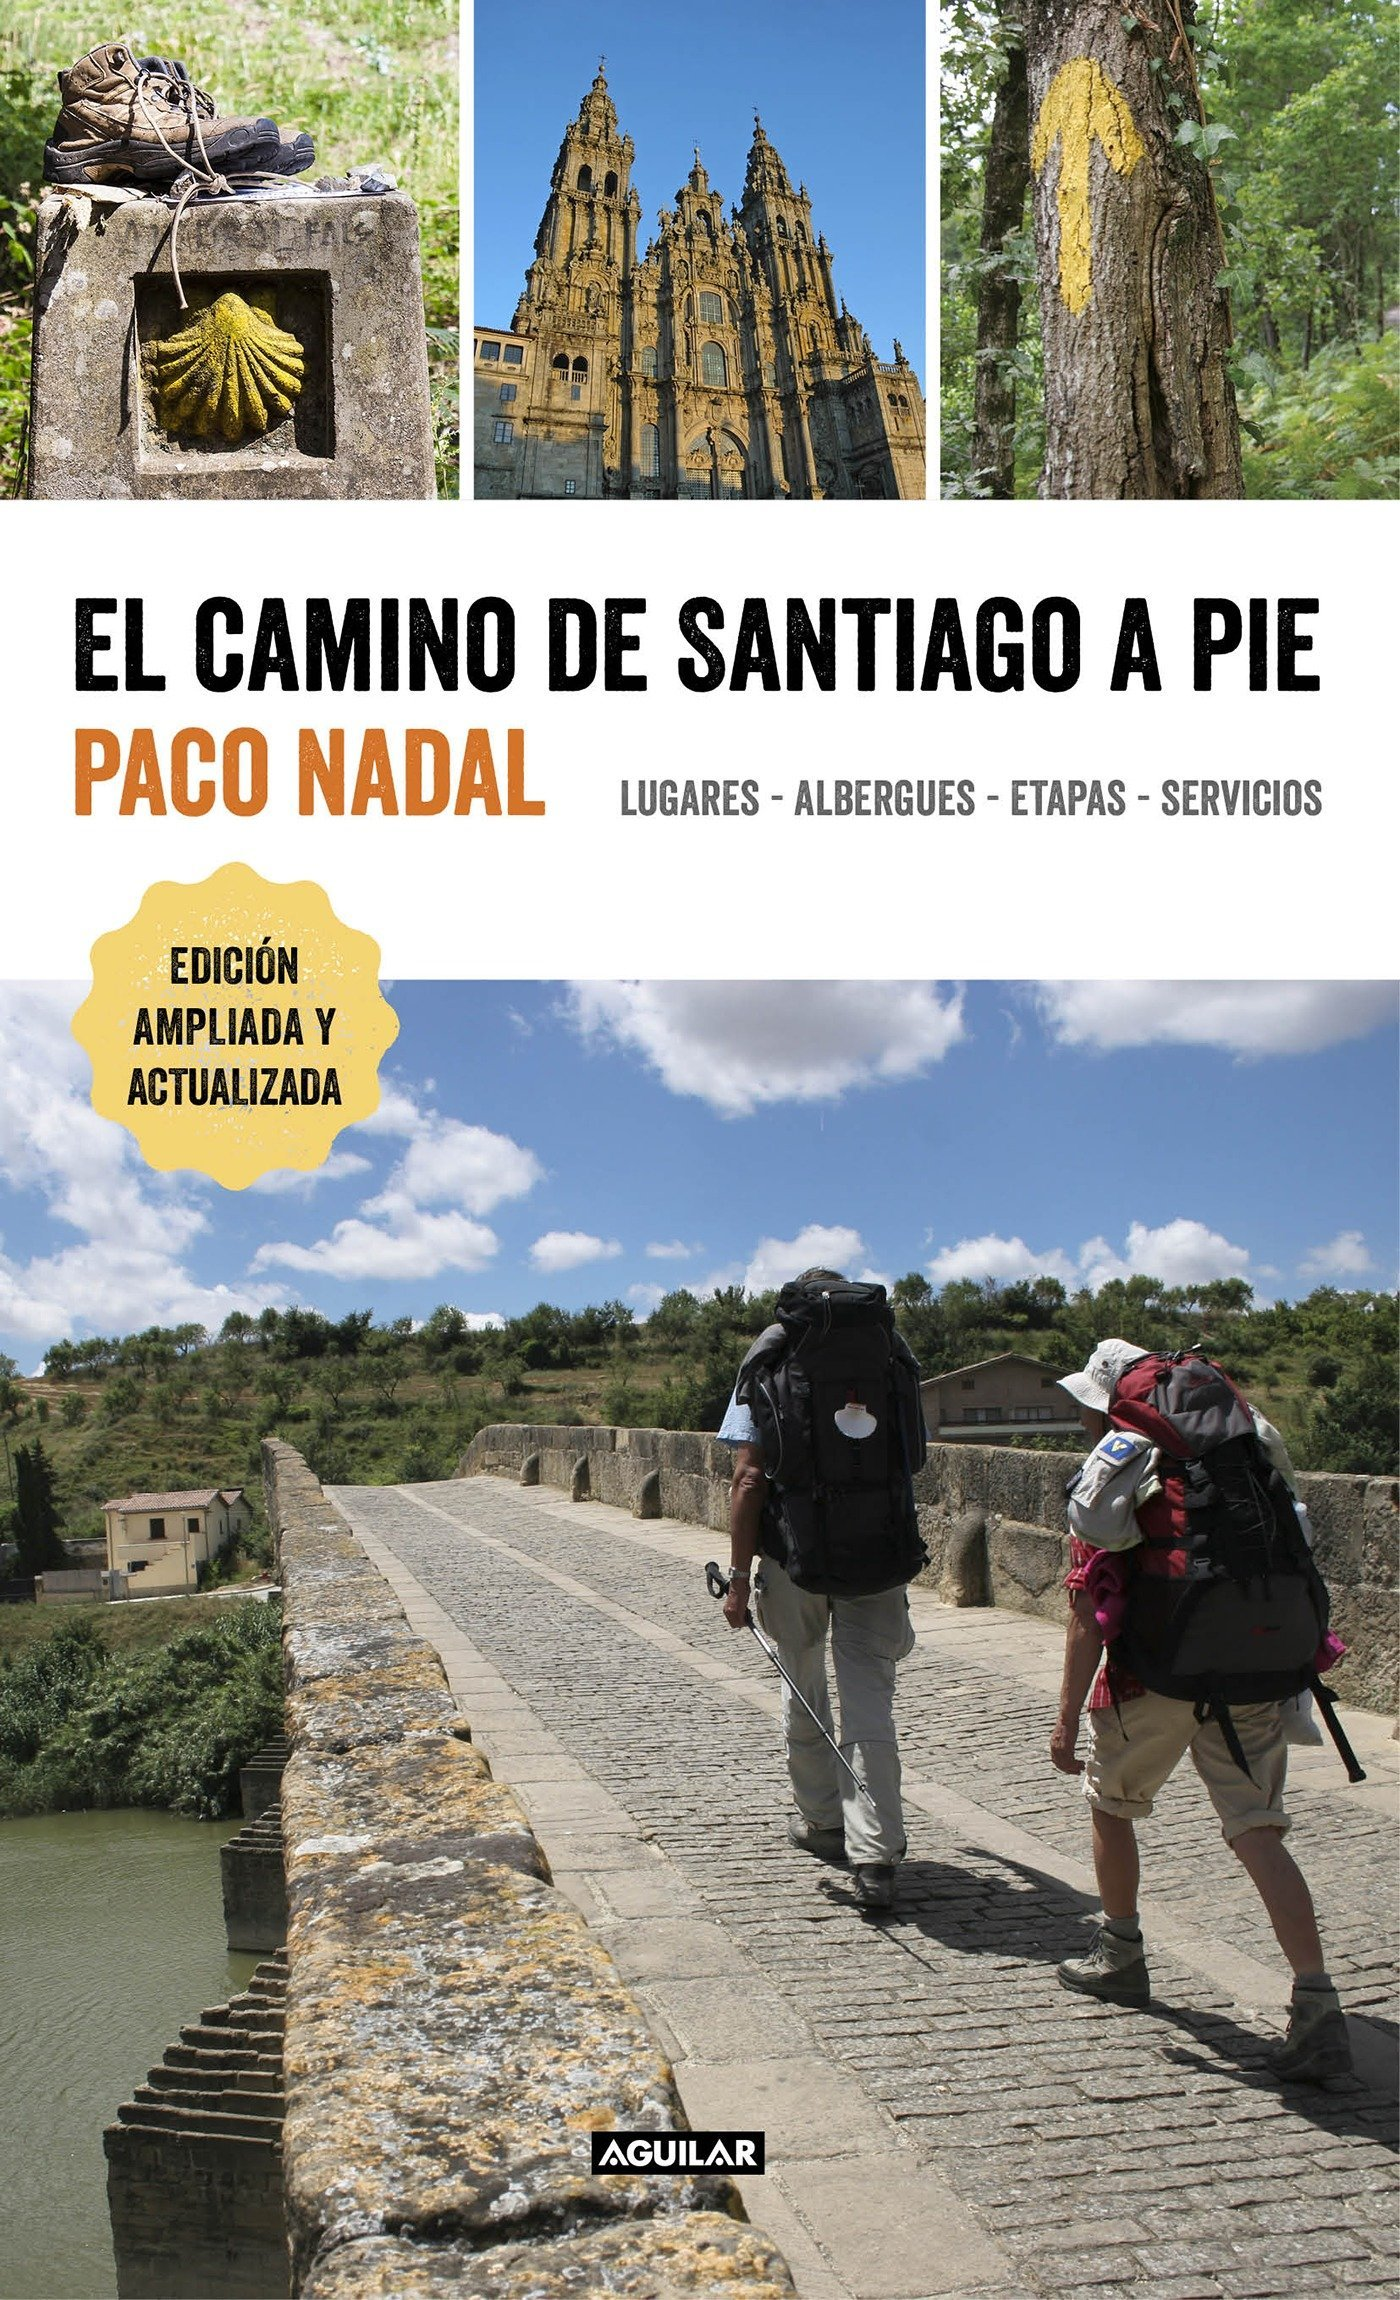 El camino de Santiago a pie / The Camino de Santiago On Foot: Places,  Lodging, S tages, and Services: Lugares, albergues, etapas, servicios  (Spanish ...